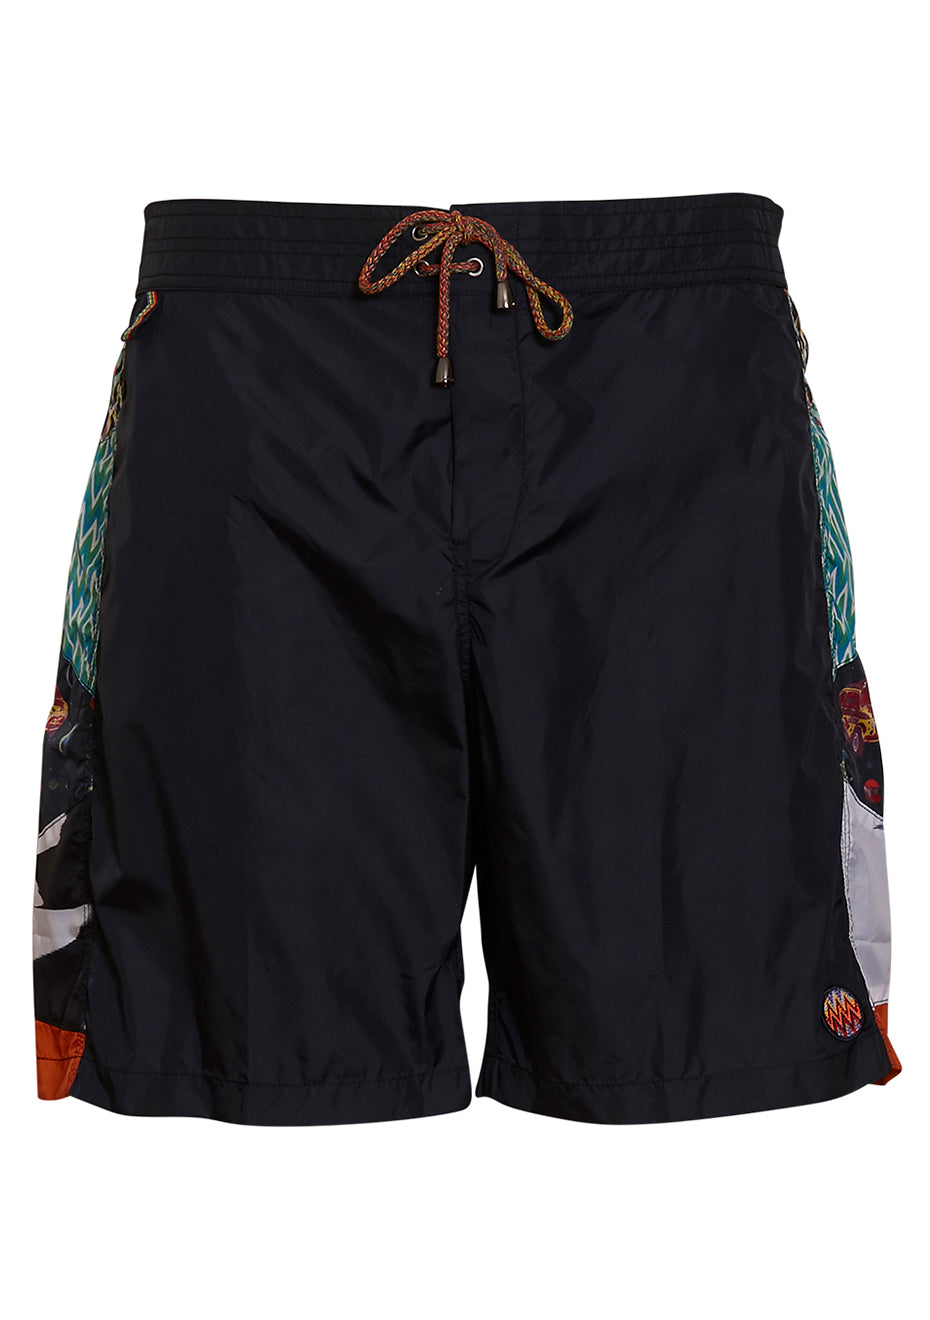 Long Swim Shorts